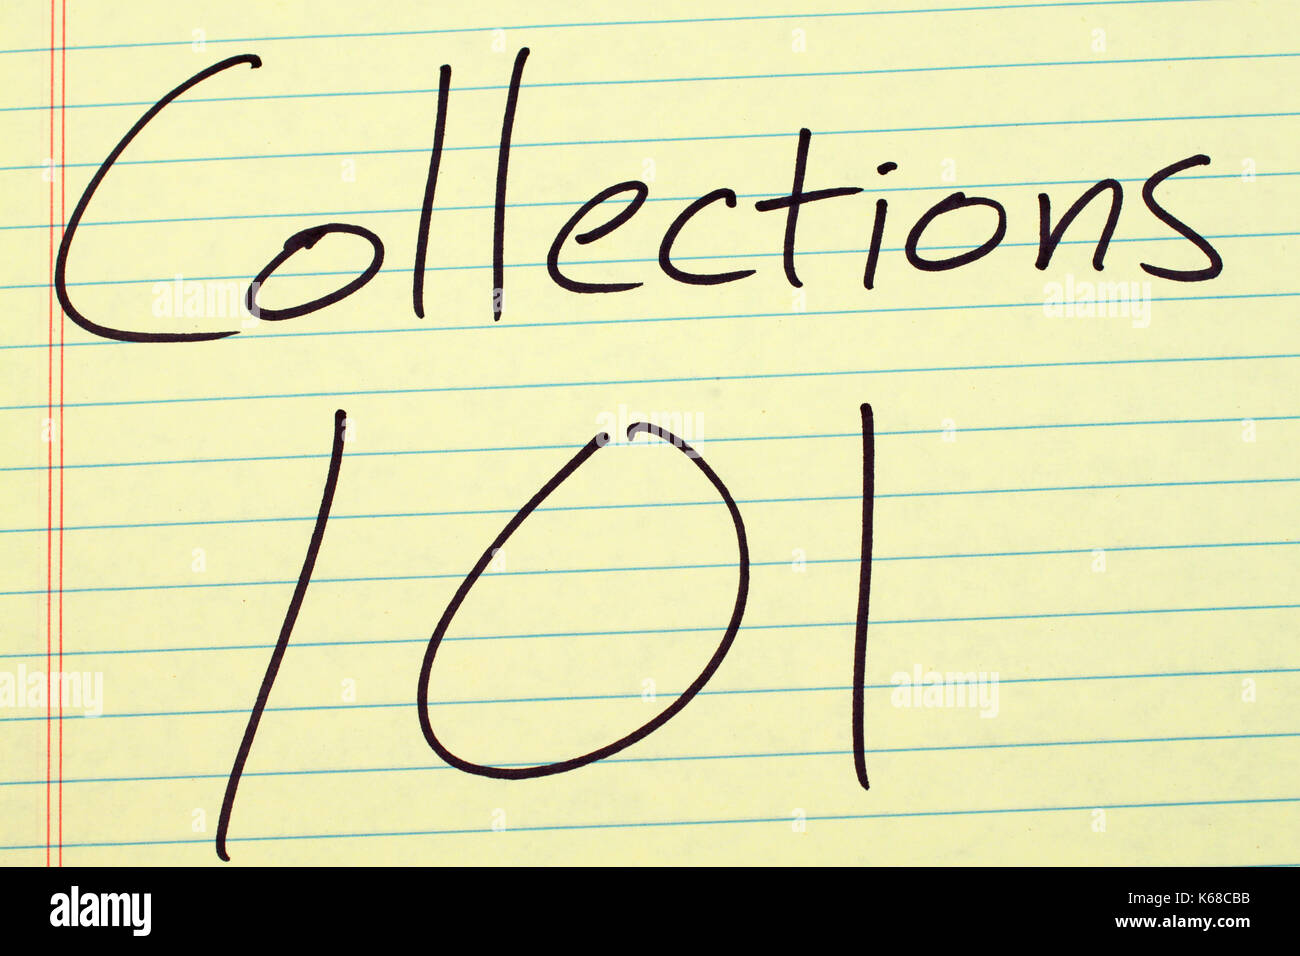 The words 'Collections 101' on a yellow legal pad - Stock Image